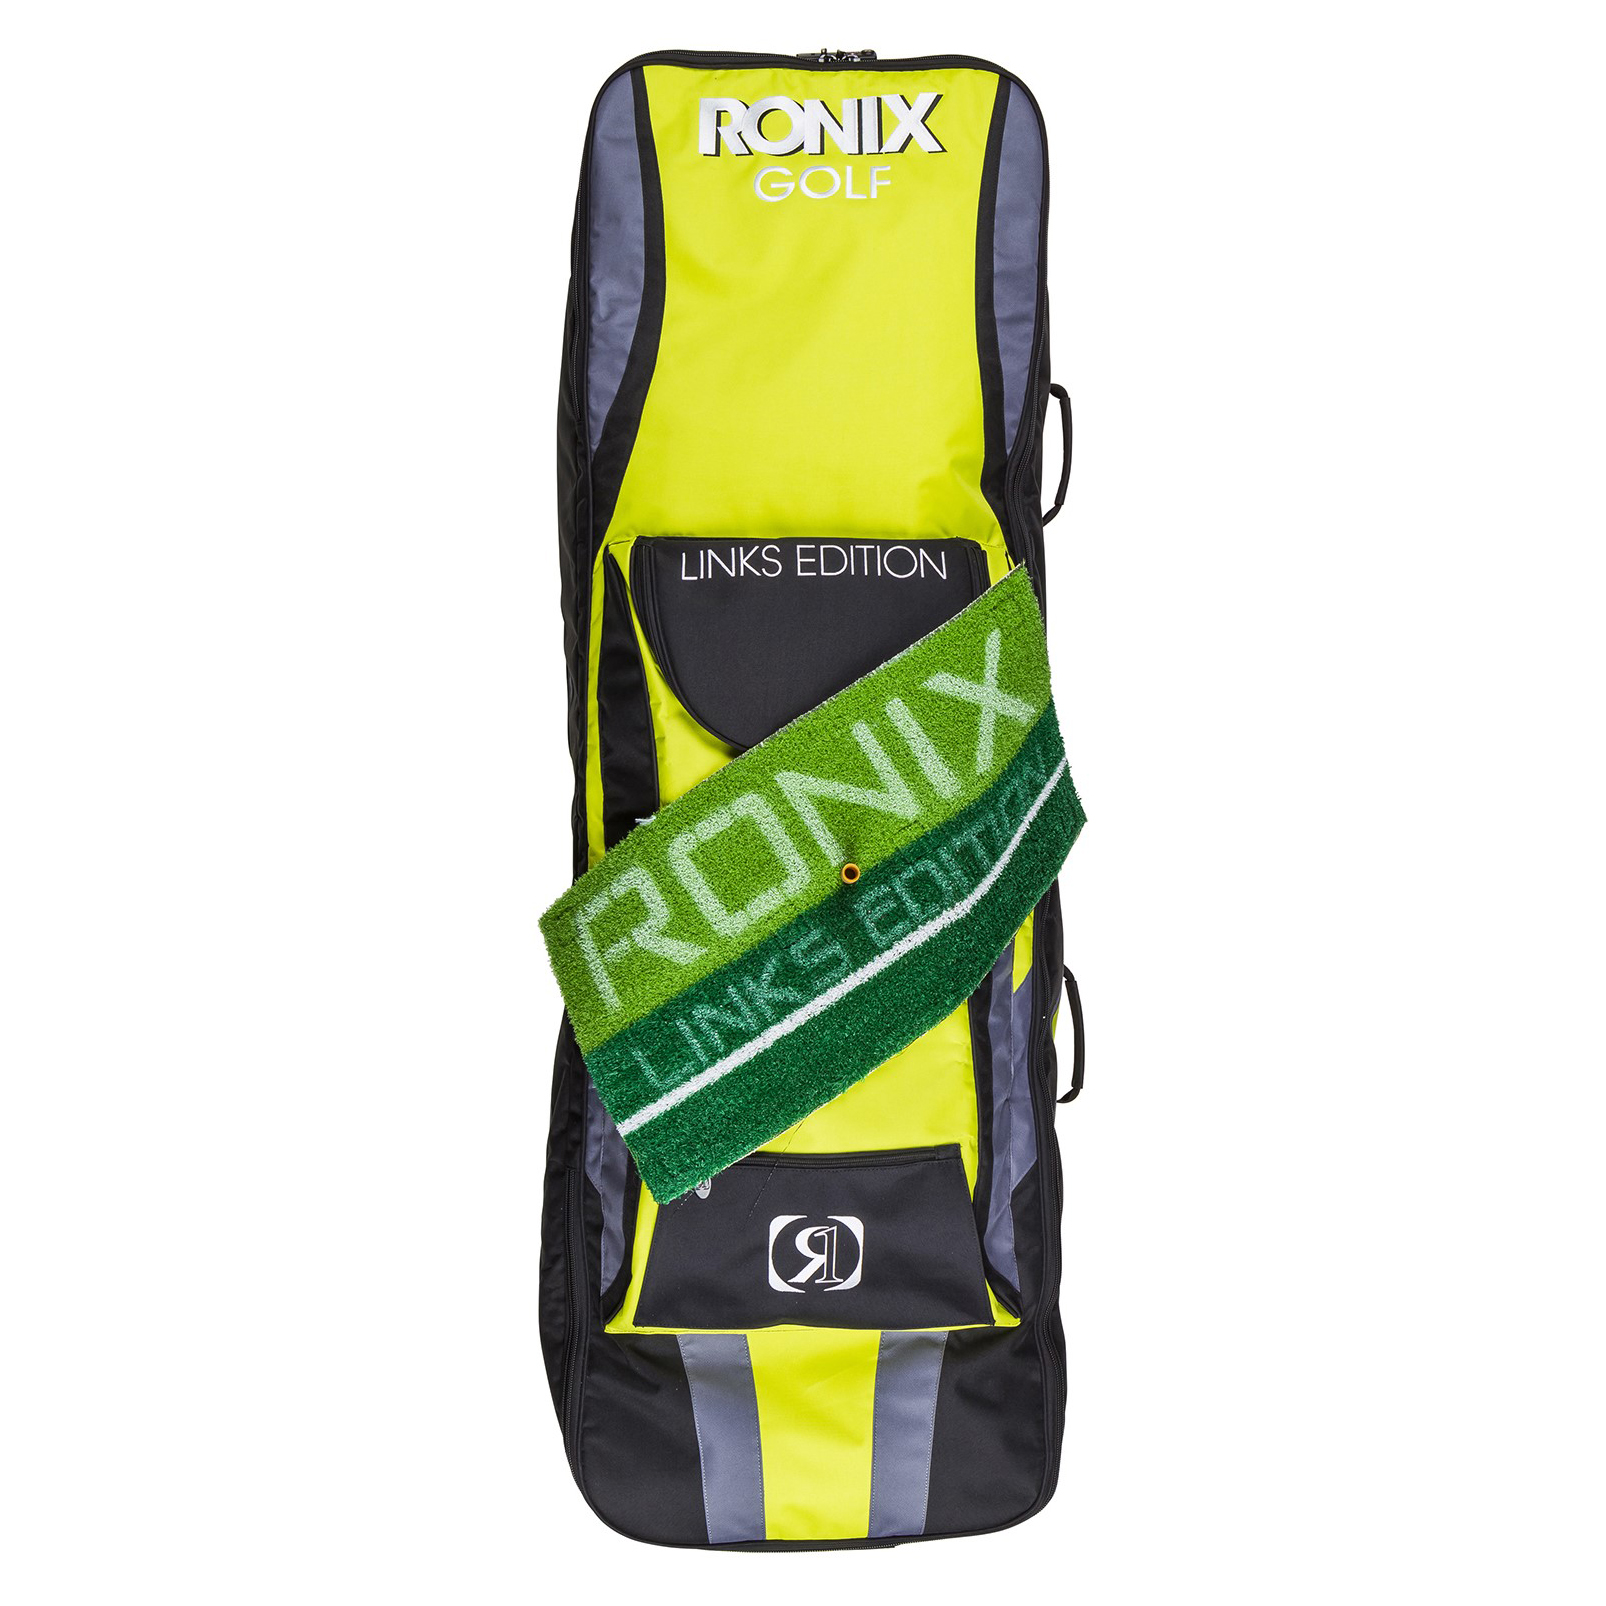 LINKS PADDED WHEELIE BAG RONIX 2017